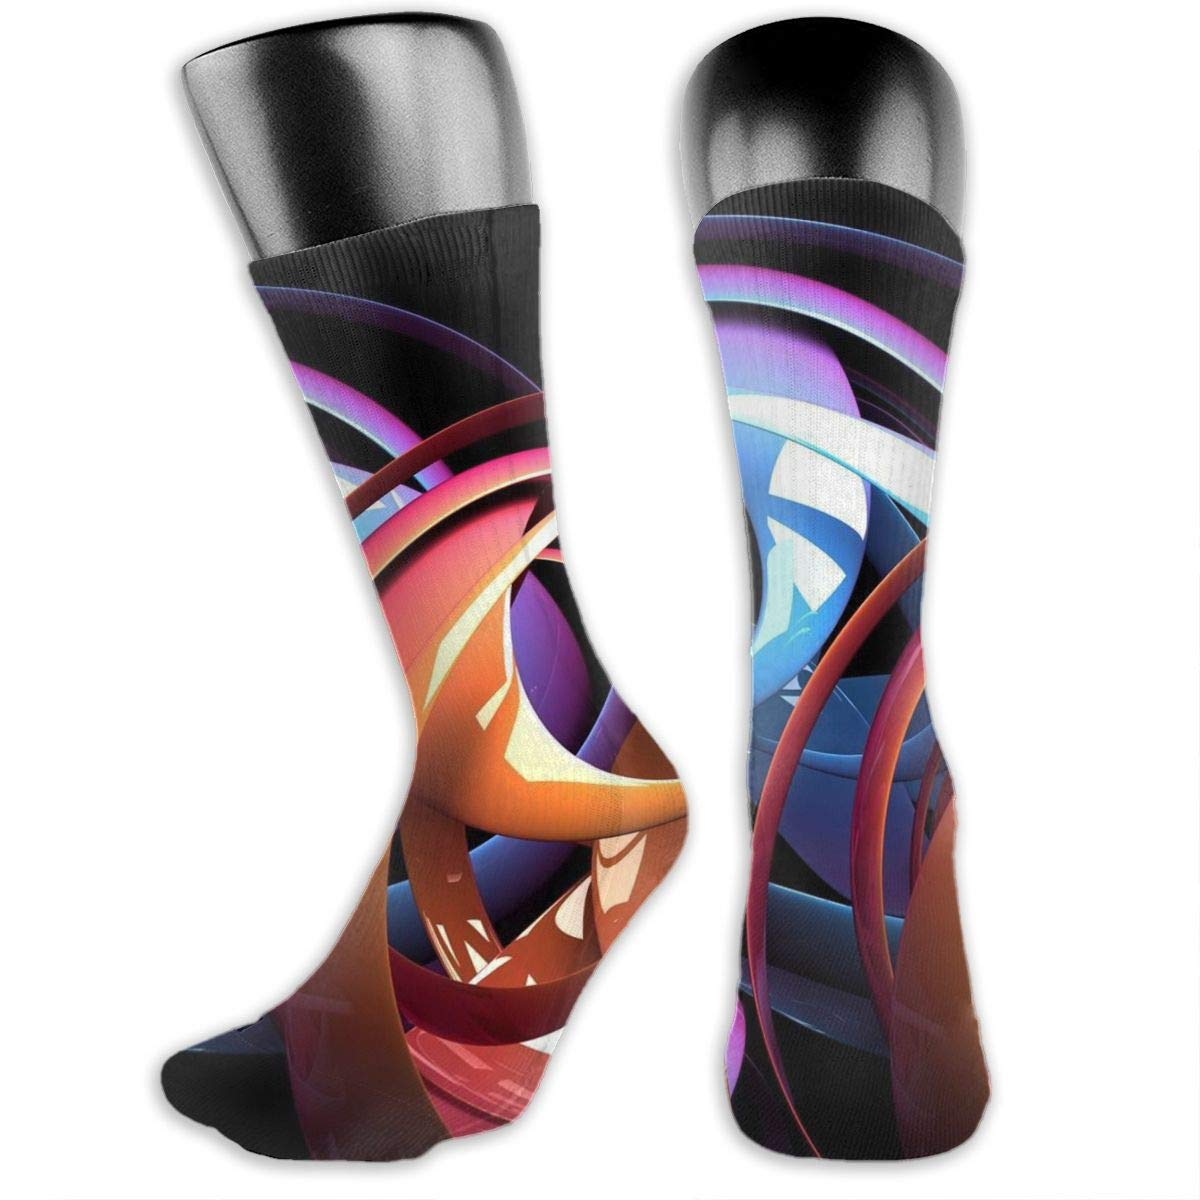 OLGCZM Best Abstract Design Men Womens Thin High Ankle Casual Socks Fit Outdoor Hiking Trail